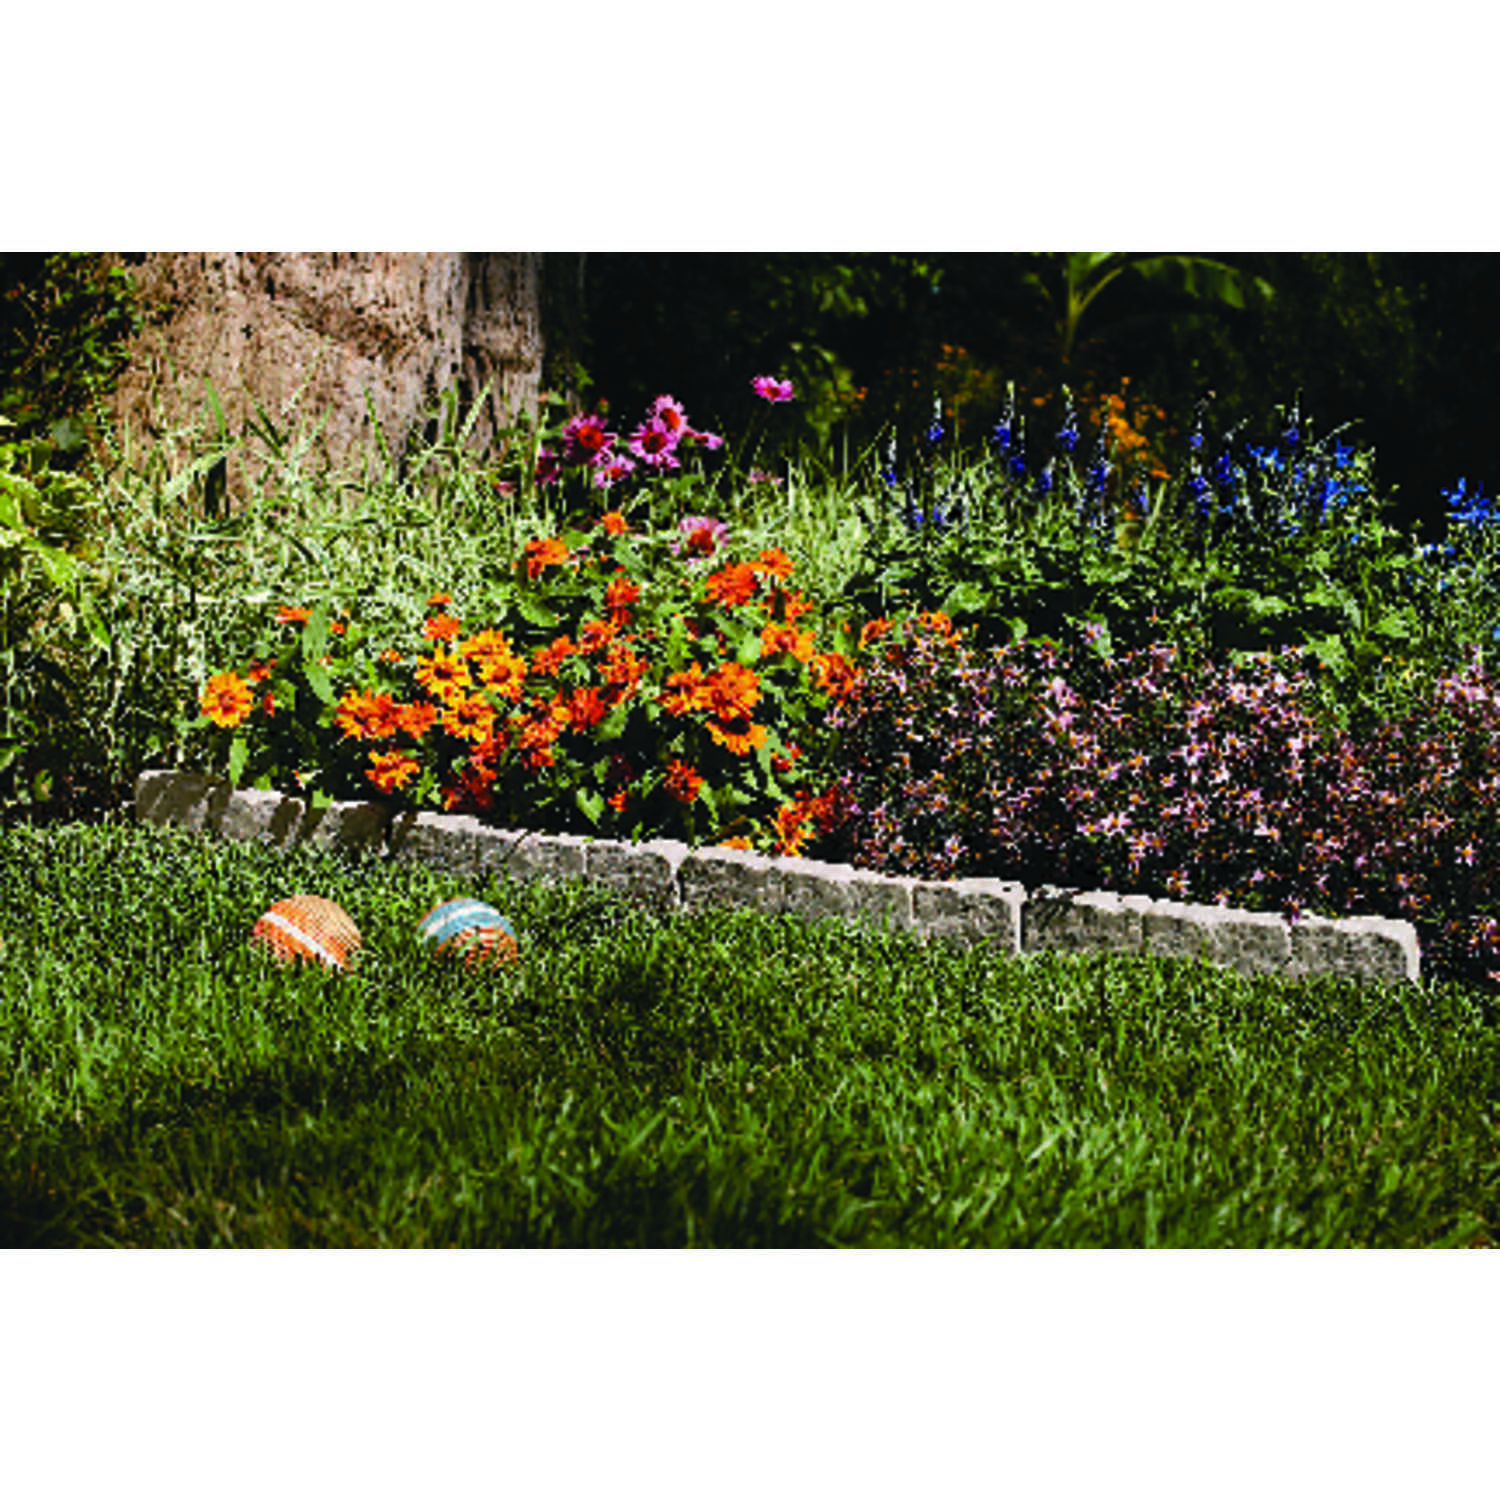 Suncast 10 ft. L x 5.75 in. H Lawn Edging Natural Resin - Ace Hardware